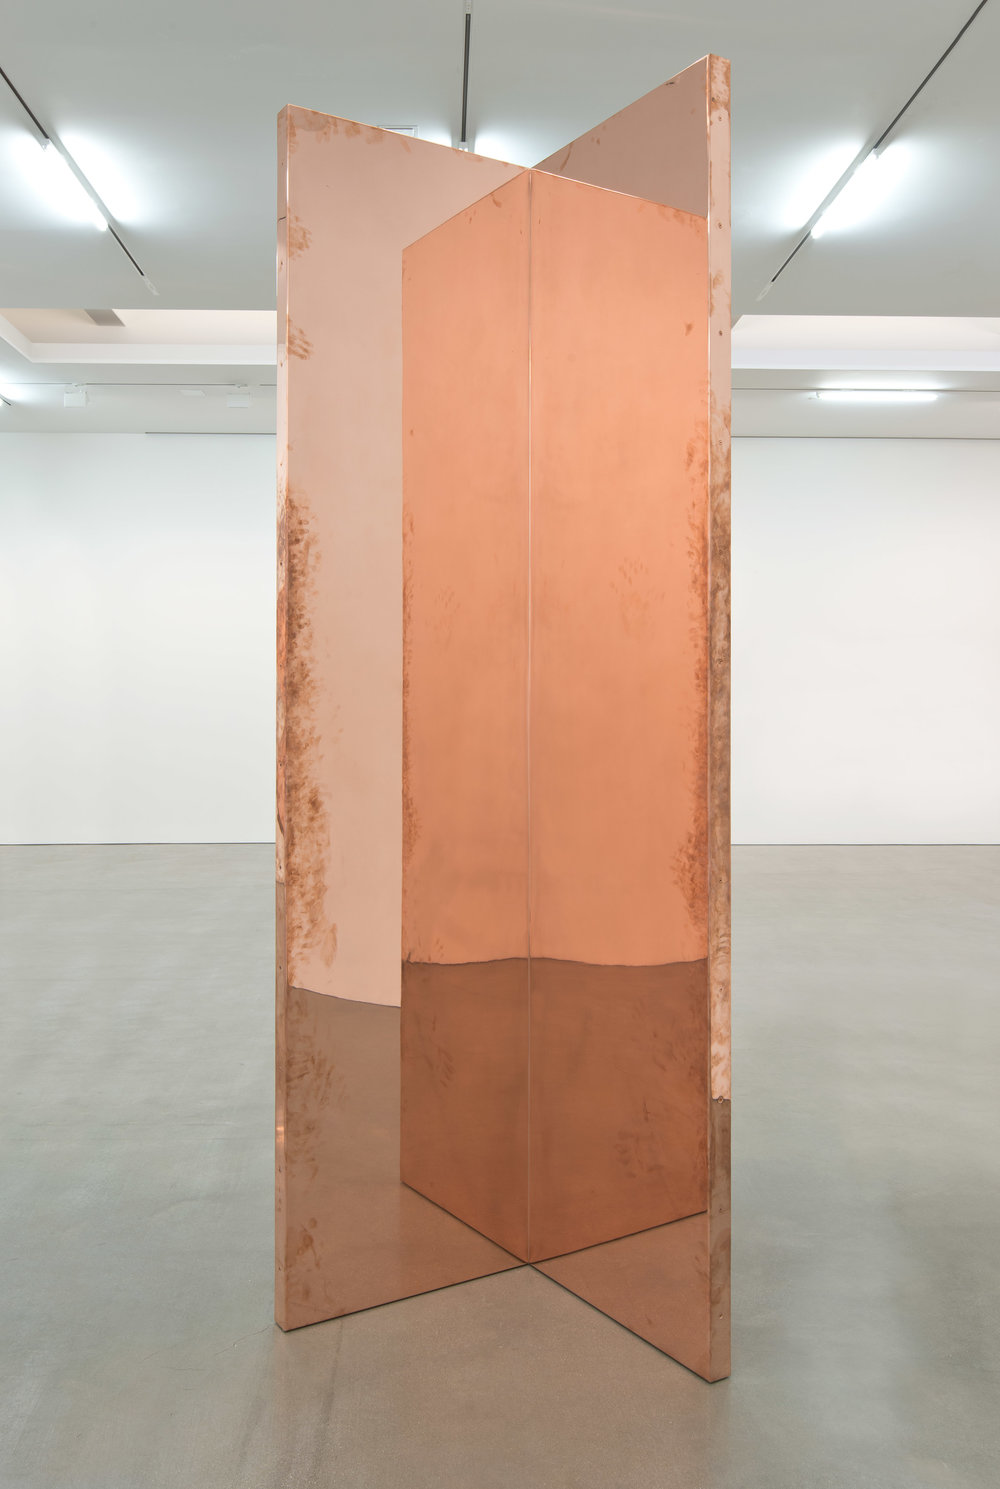 "Copper Surrogate (60"" x 120"" 48 ounce C11000 Copper Alloy, 90º Bend, 120"" Bisection: February 19-24/April 5, 2014, Los Angeles, California)   2014  Polished copper  120 x 30 x 30 inches   Surrogates (Full Sheet, Art Handling), 2011–    Selected Bodies of Work, 2014"